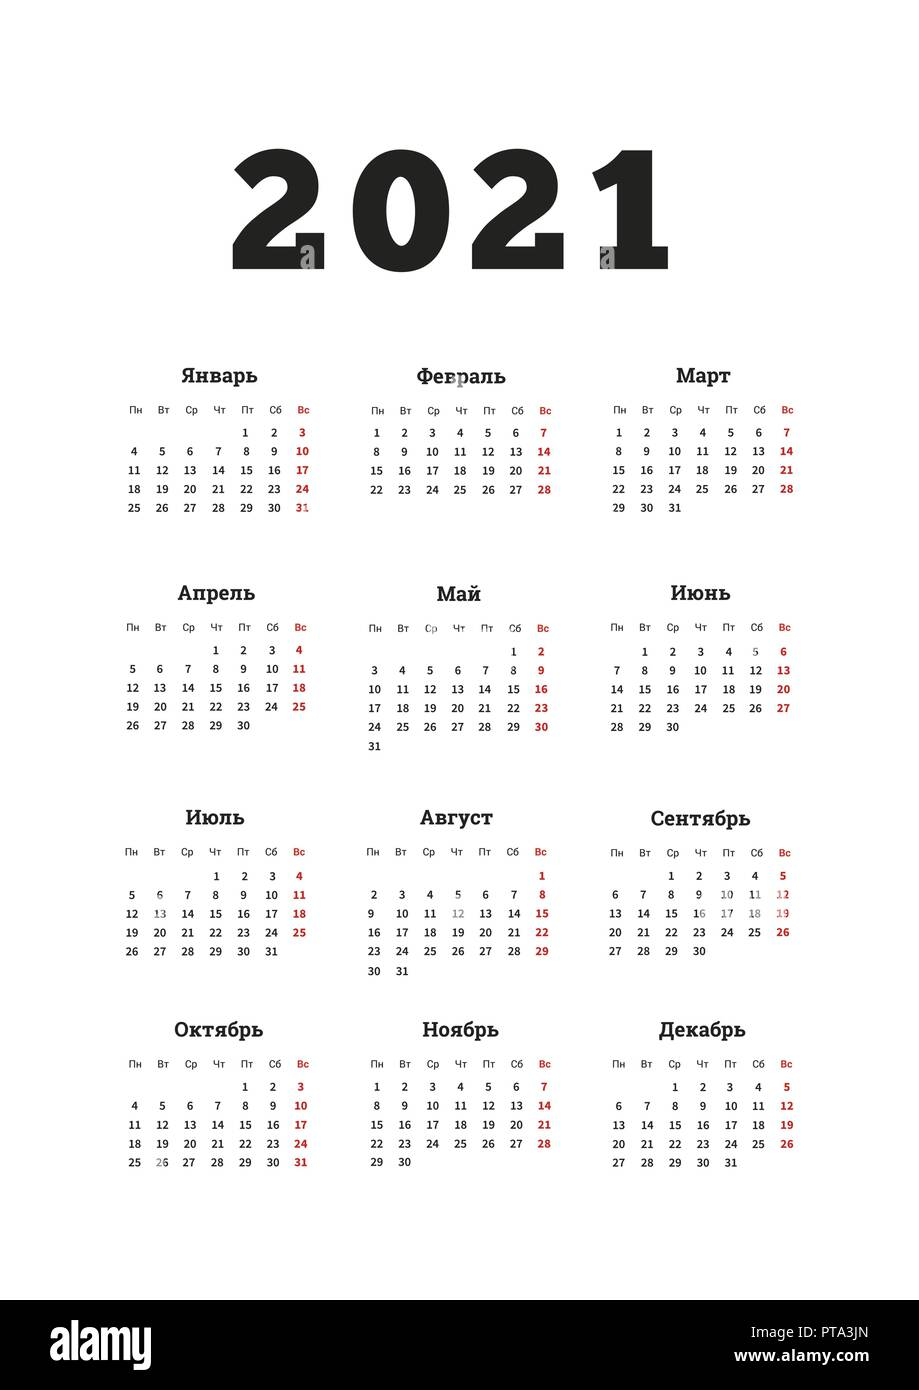 2021 year simple calendar on russian language, A4 size vertical